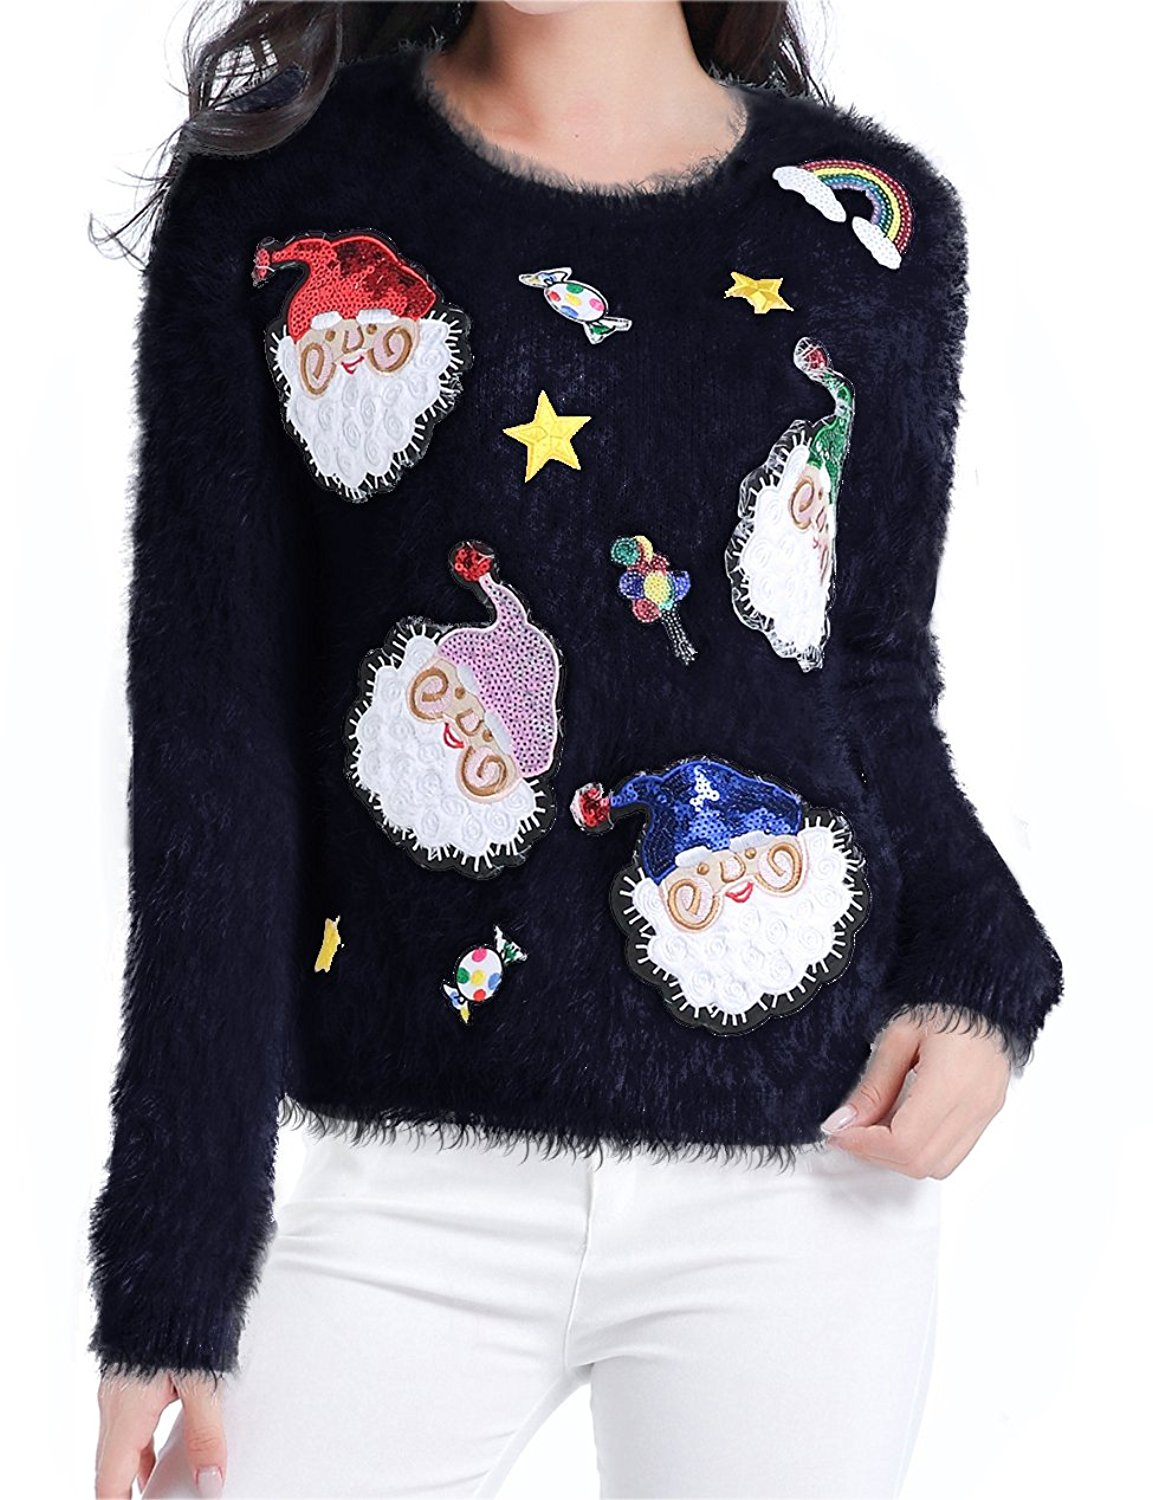 Paskyee Youth Kids Cute Crewneck Knitted Pullover Ugly Christmas Sweater